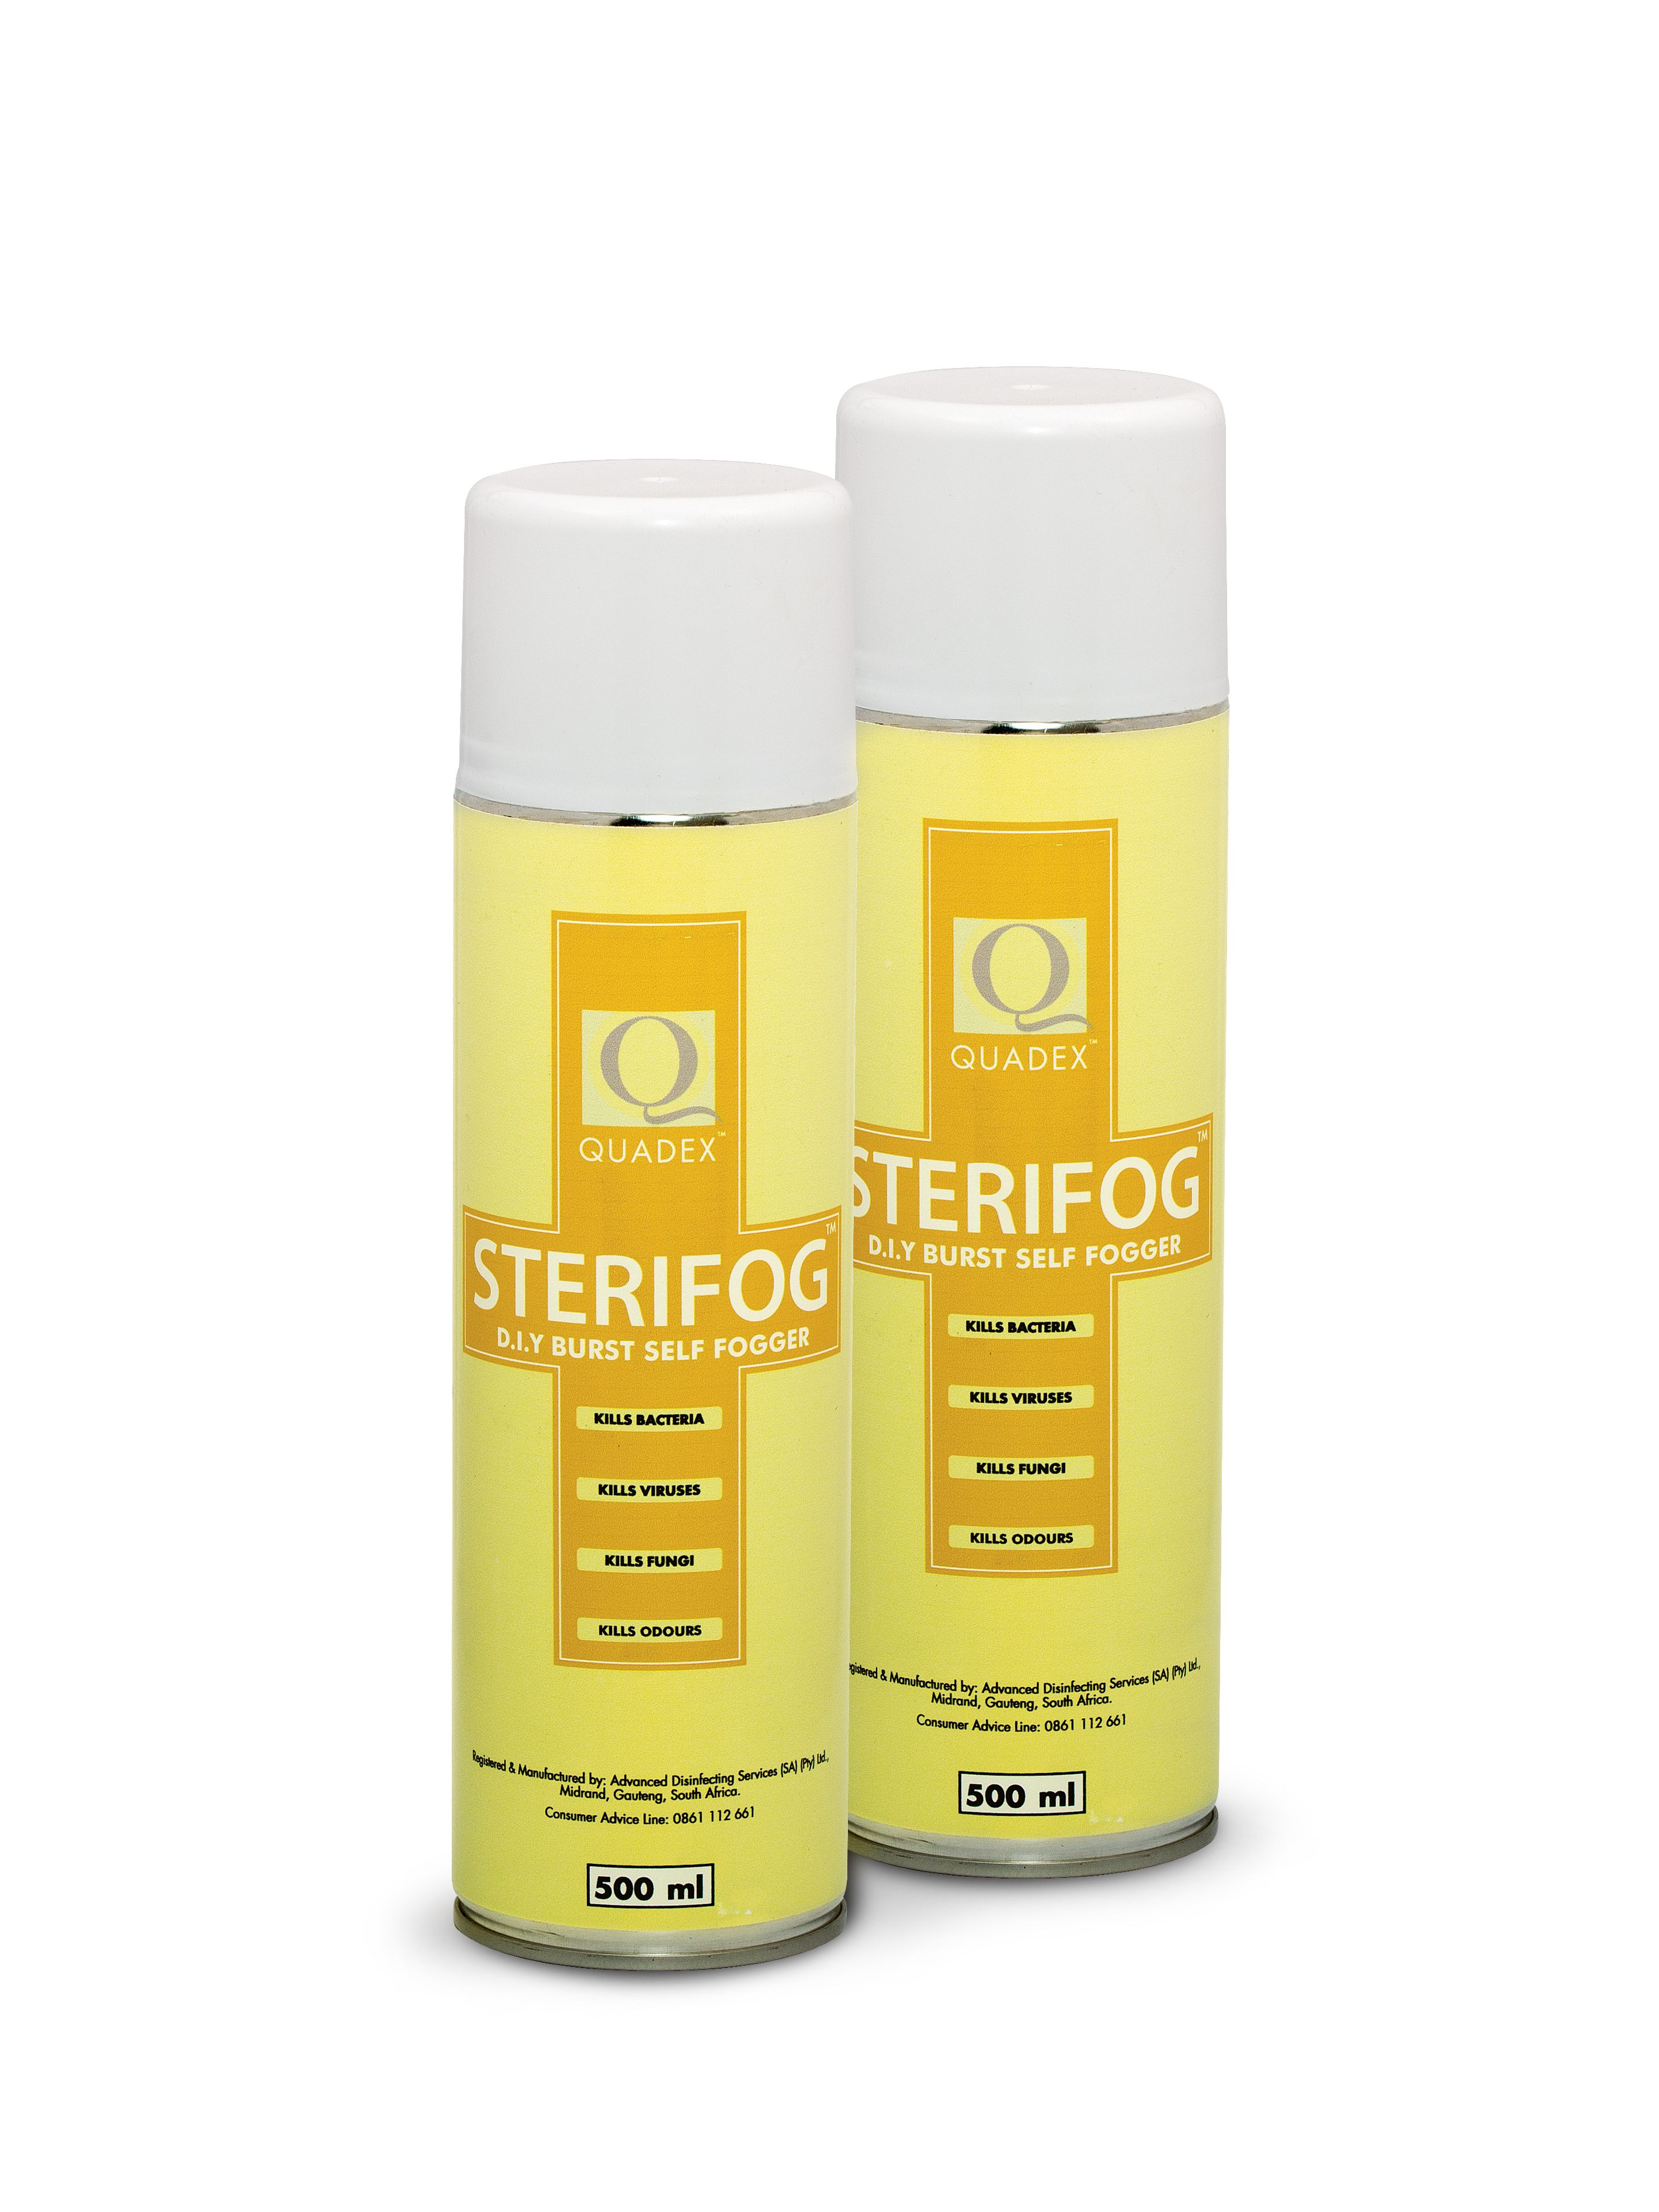 Sterifog Burst Fogger For Areas Where Normal Cleaning And